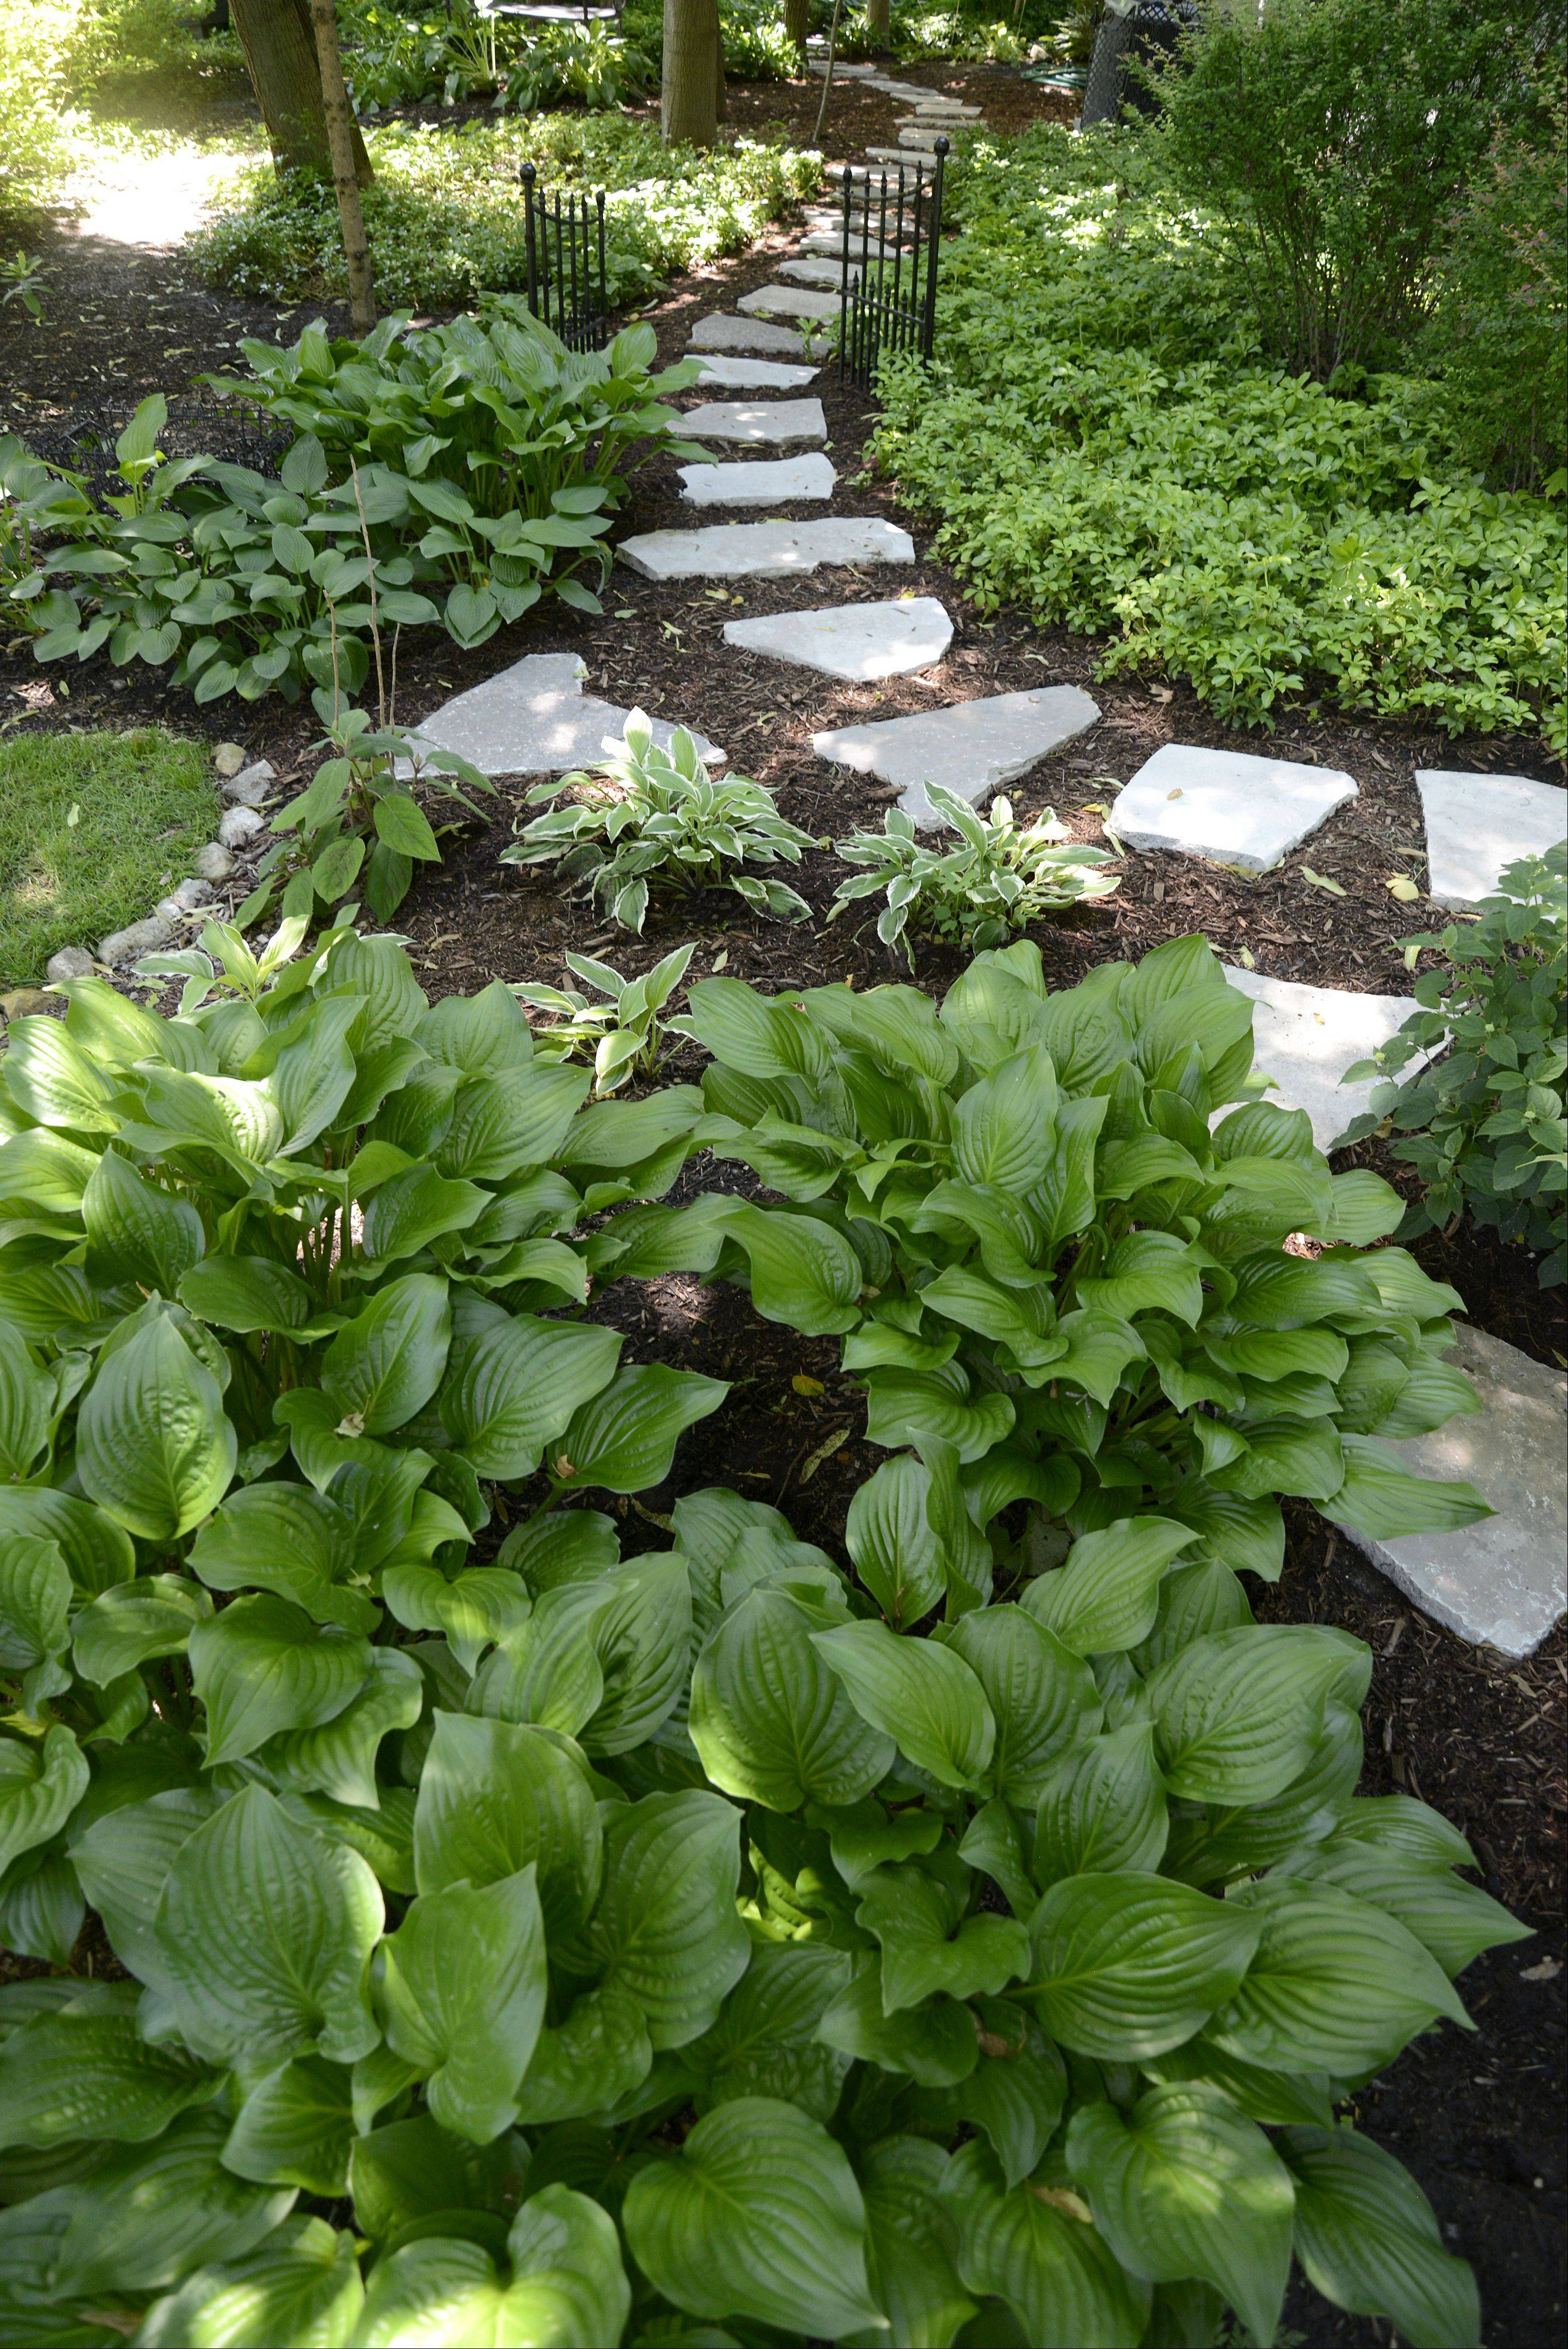 Hostas line a stone path in the back yard of Sandi and David Leeming's Batavia home.